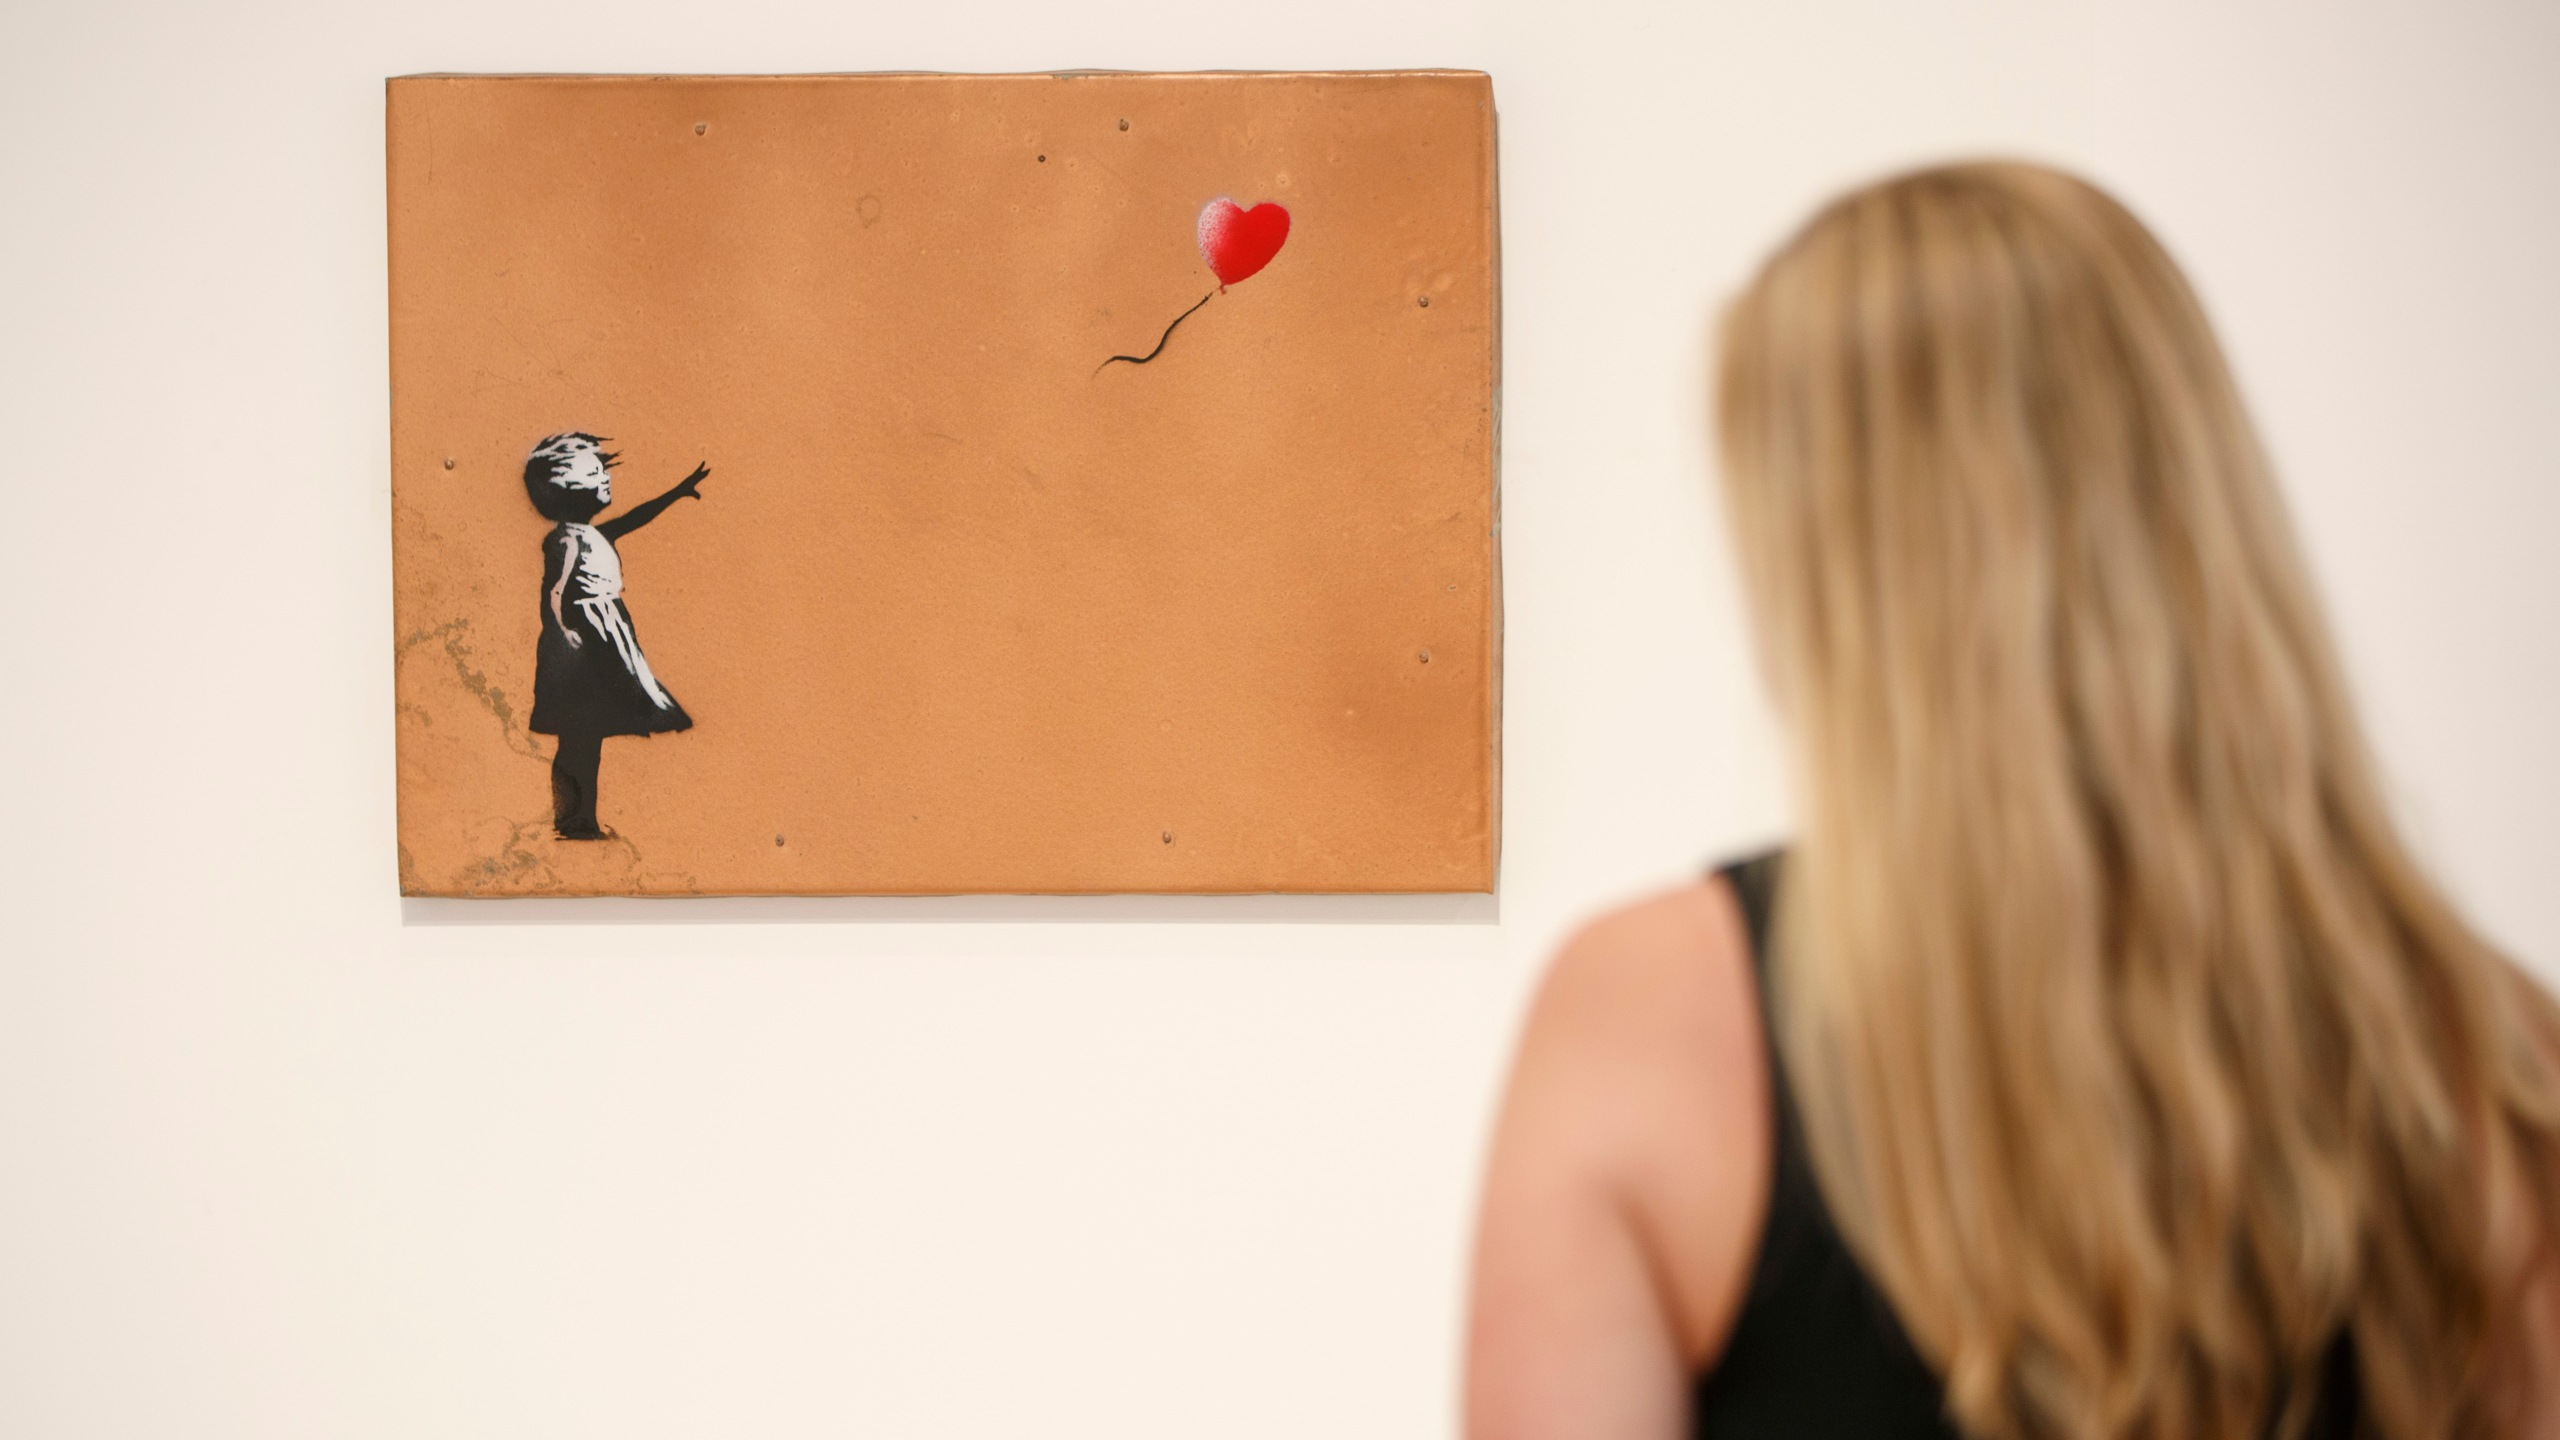 A gallery assistant poses with 'Girl with Balloon' 2006 artwork by Banksy at Lazinc Gallery in London on July 11, 2018. - The exhibition opens to the public on July 12, 2018. (Credit: TOLGA AKMEN/AFP/Getty Images)